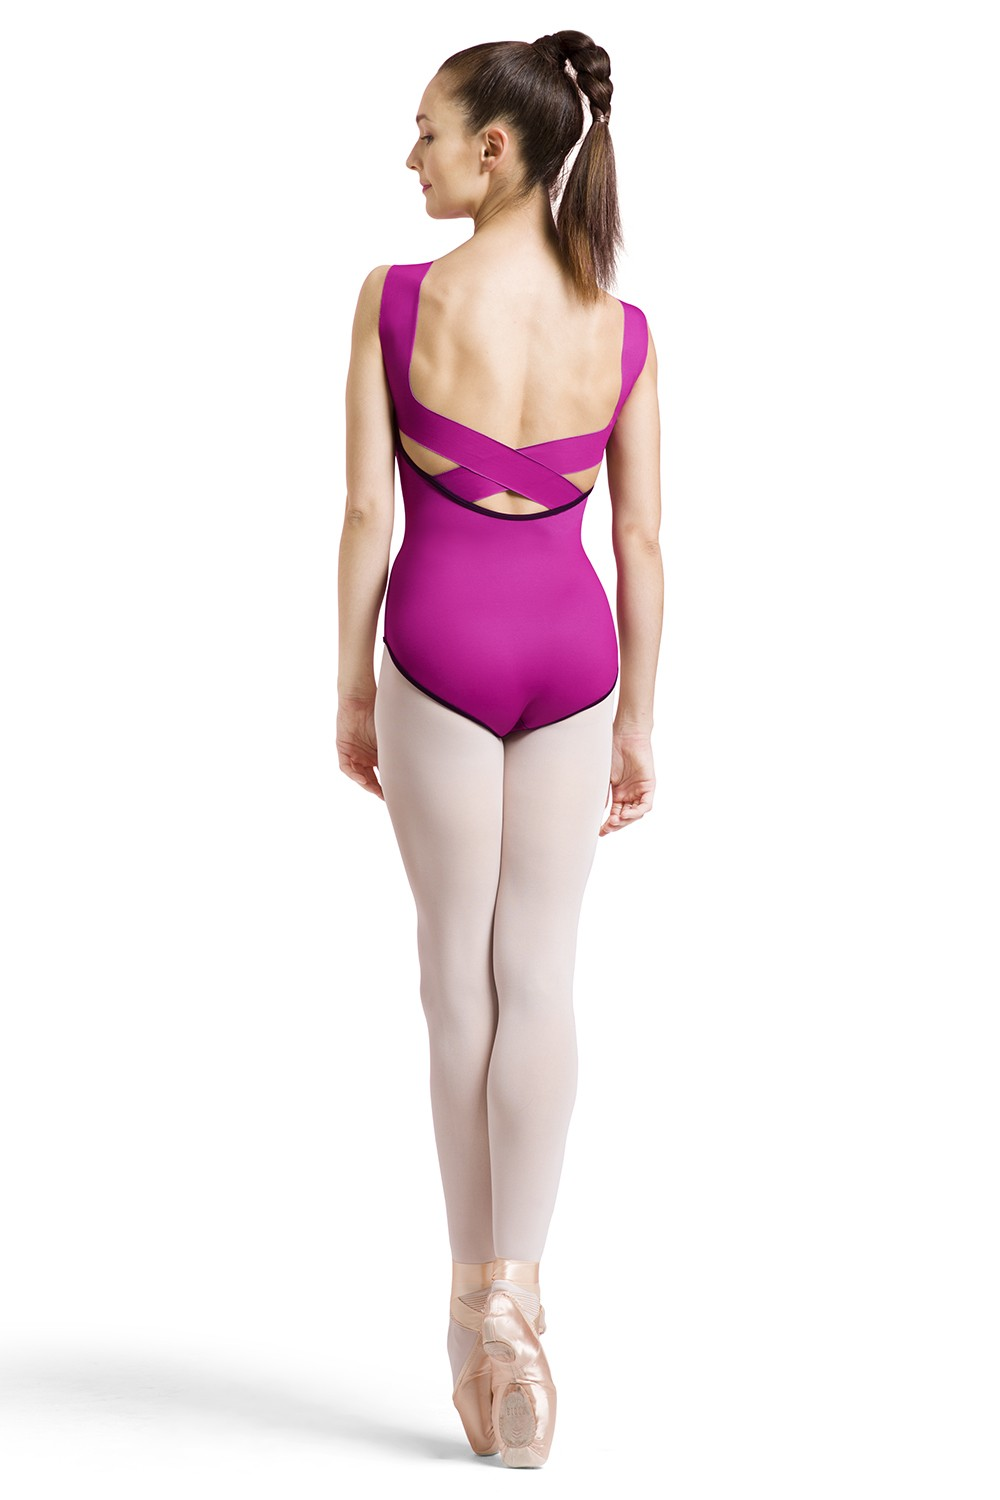 Naamah Women's Dance Leotards